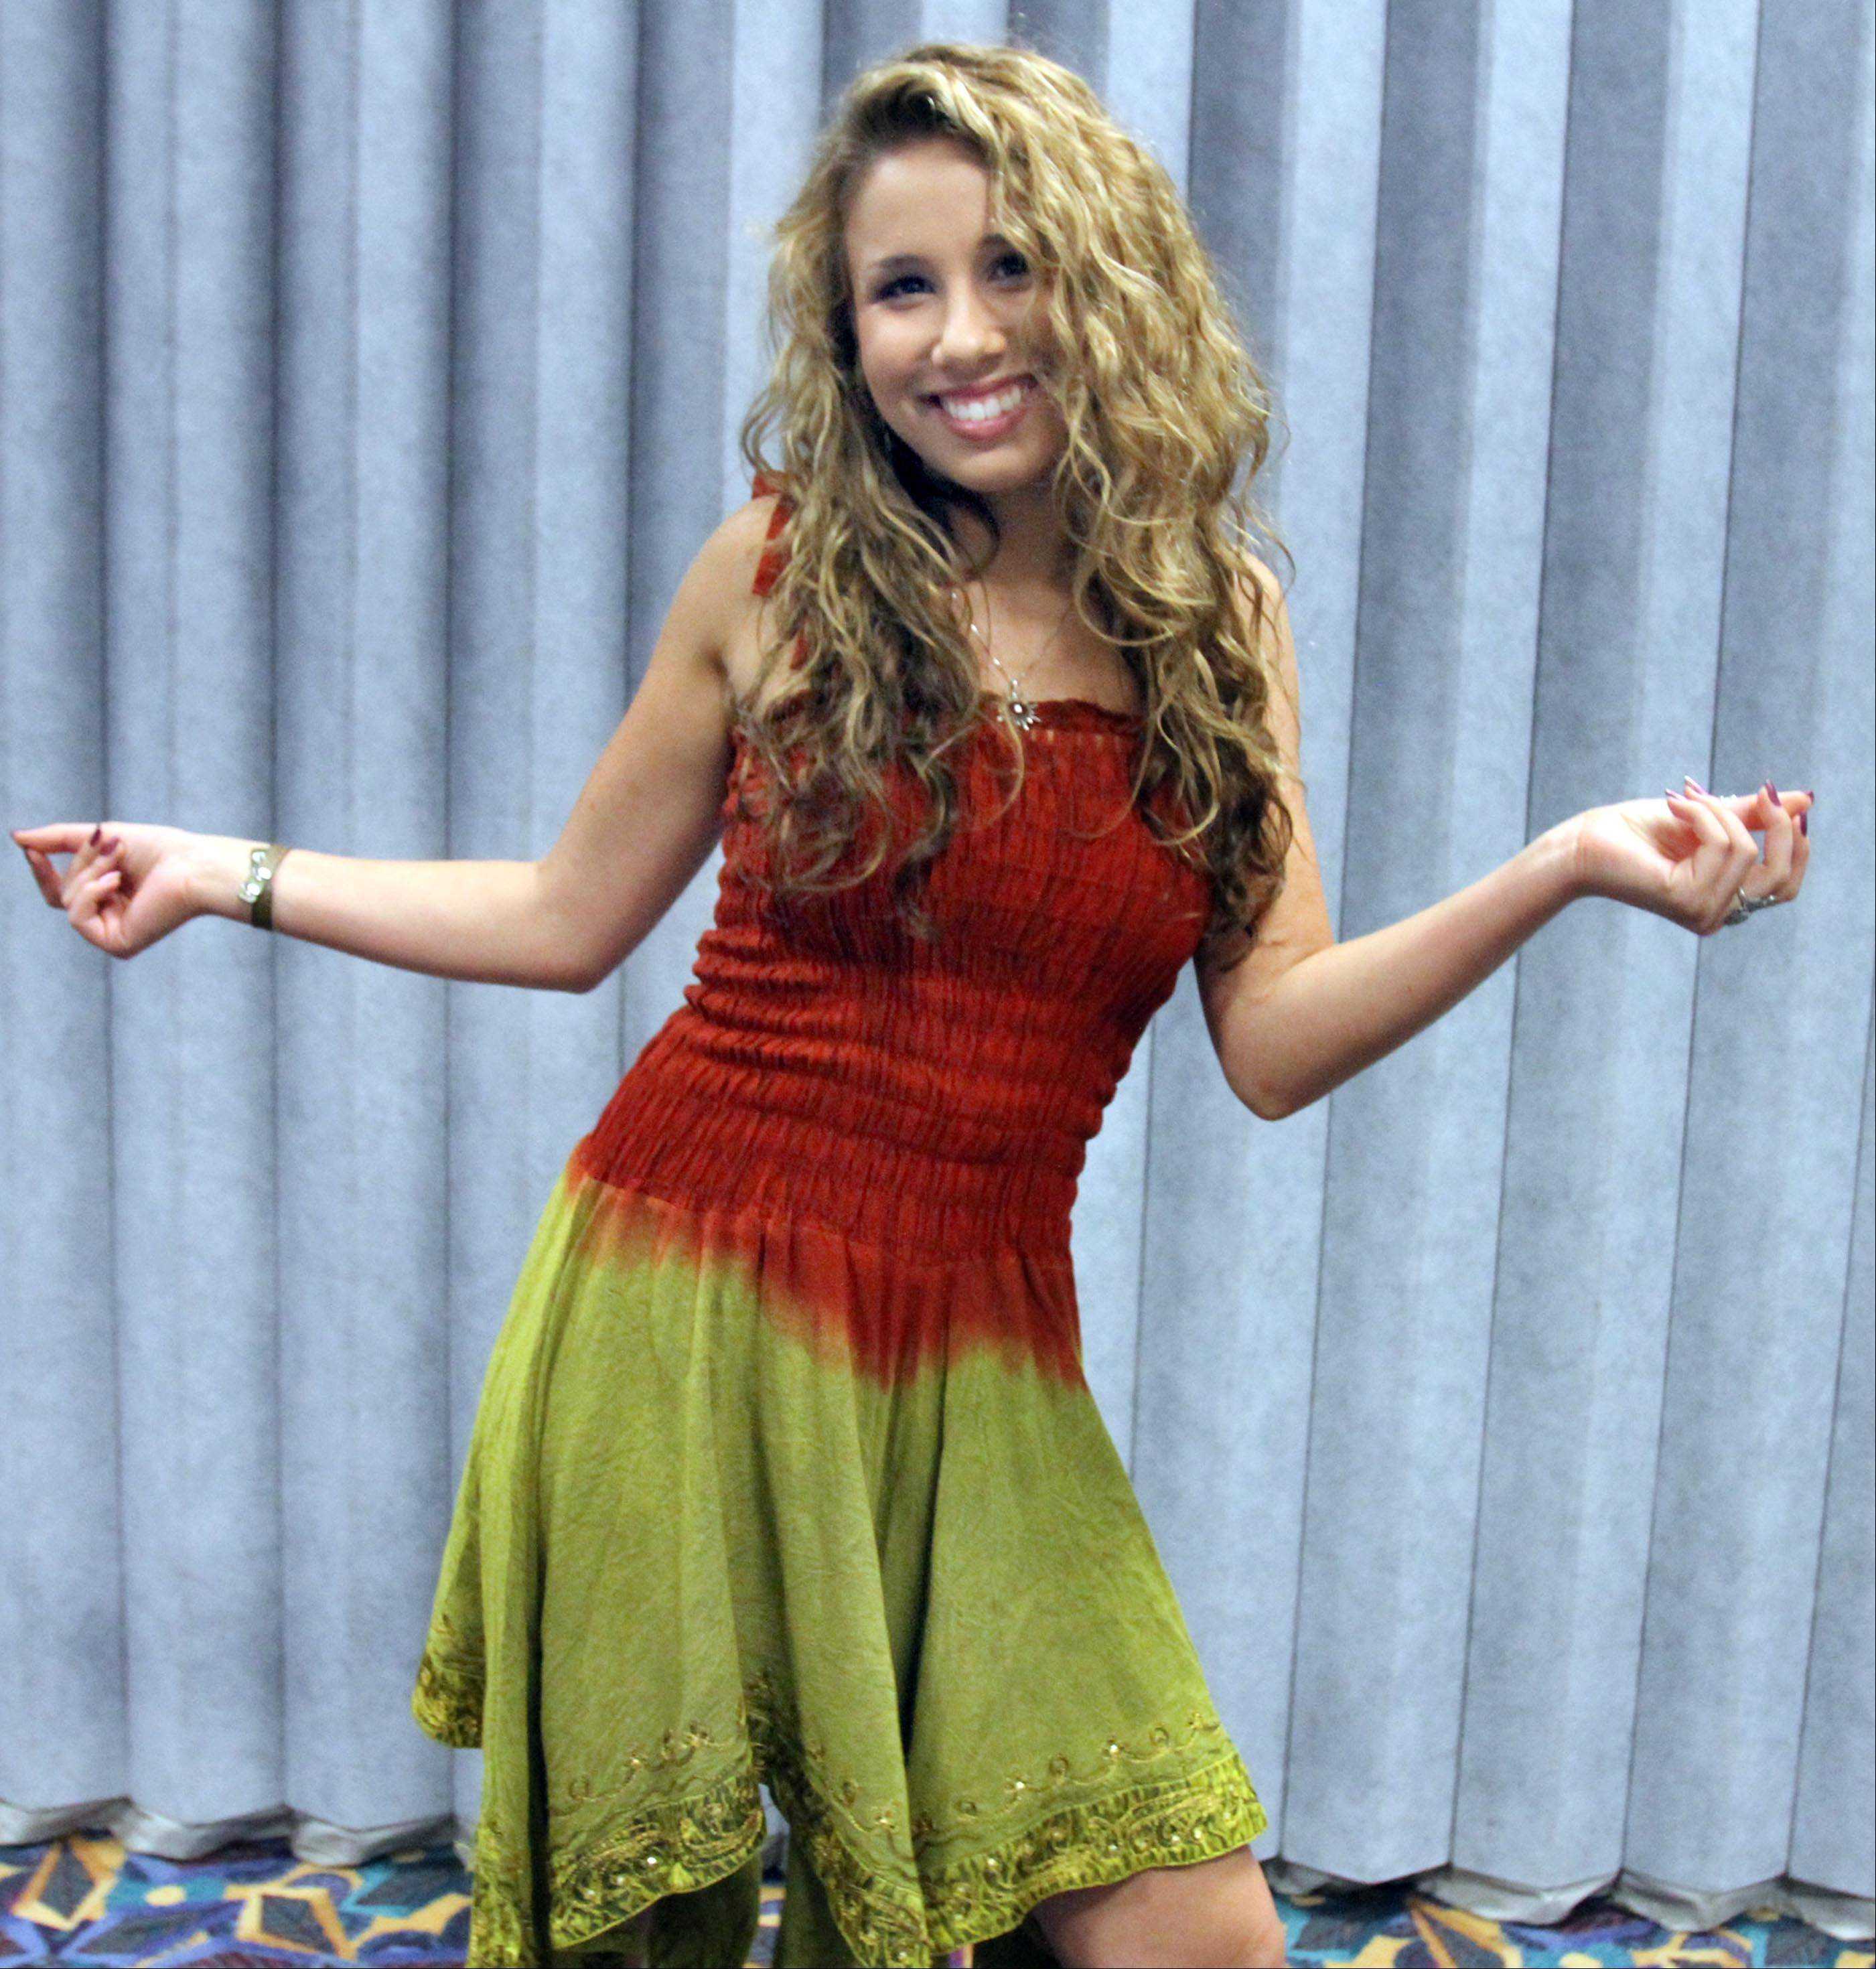 Haley Reinhart during an interview before the American Idol concert at Allstate Arena in Rosemont on Saturday.